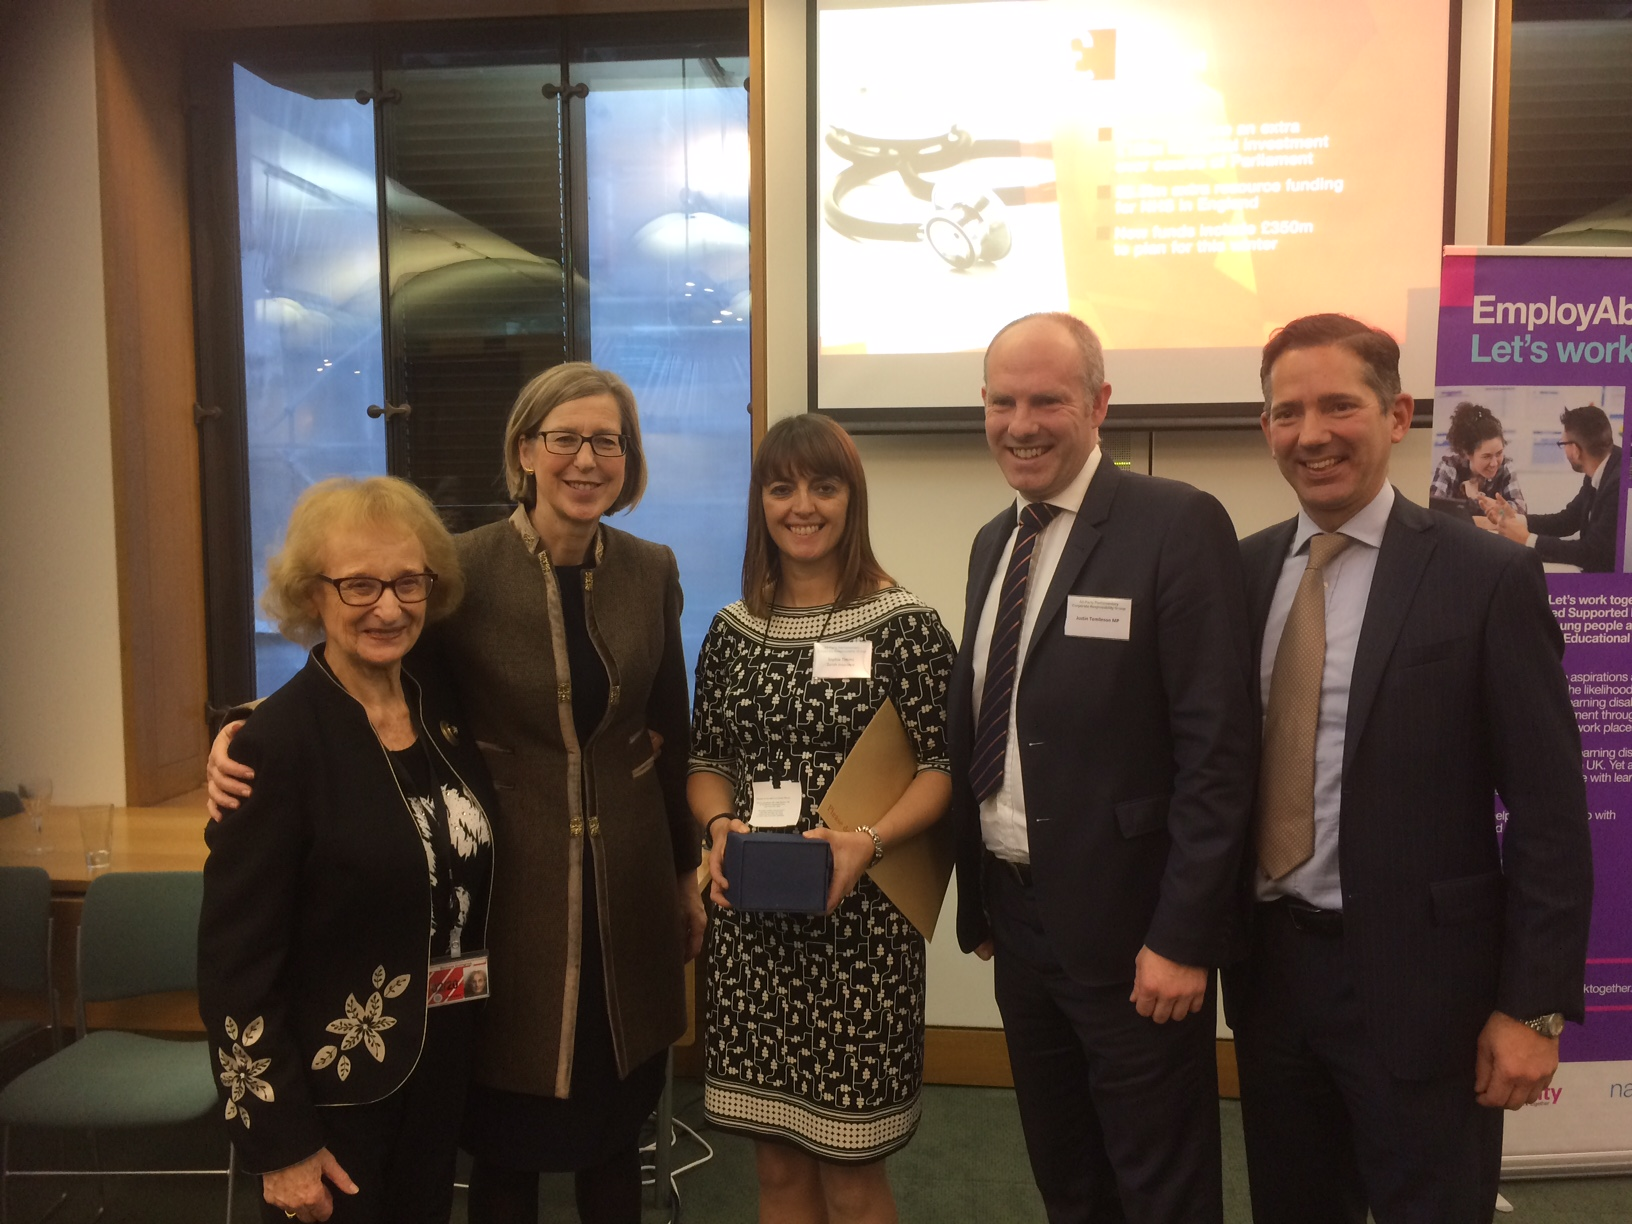 Baroness Greengross (Joint Chair of the All Party Group for corporate responsibility), Minister for Disabled People Sarah Newton MP, Sophie Spink, Head of Media Relations Zurich, Justin Tomlinson MP and Jonathan Djanogly MP